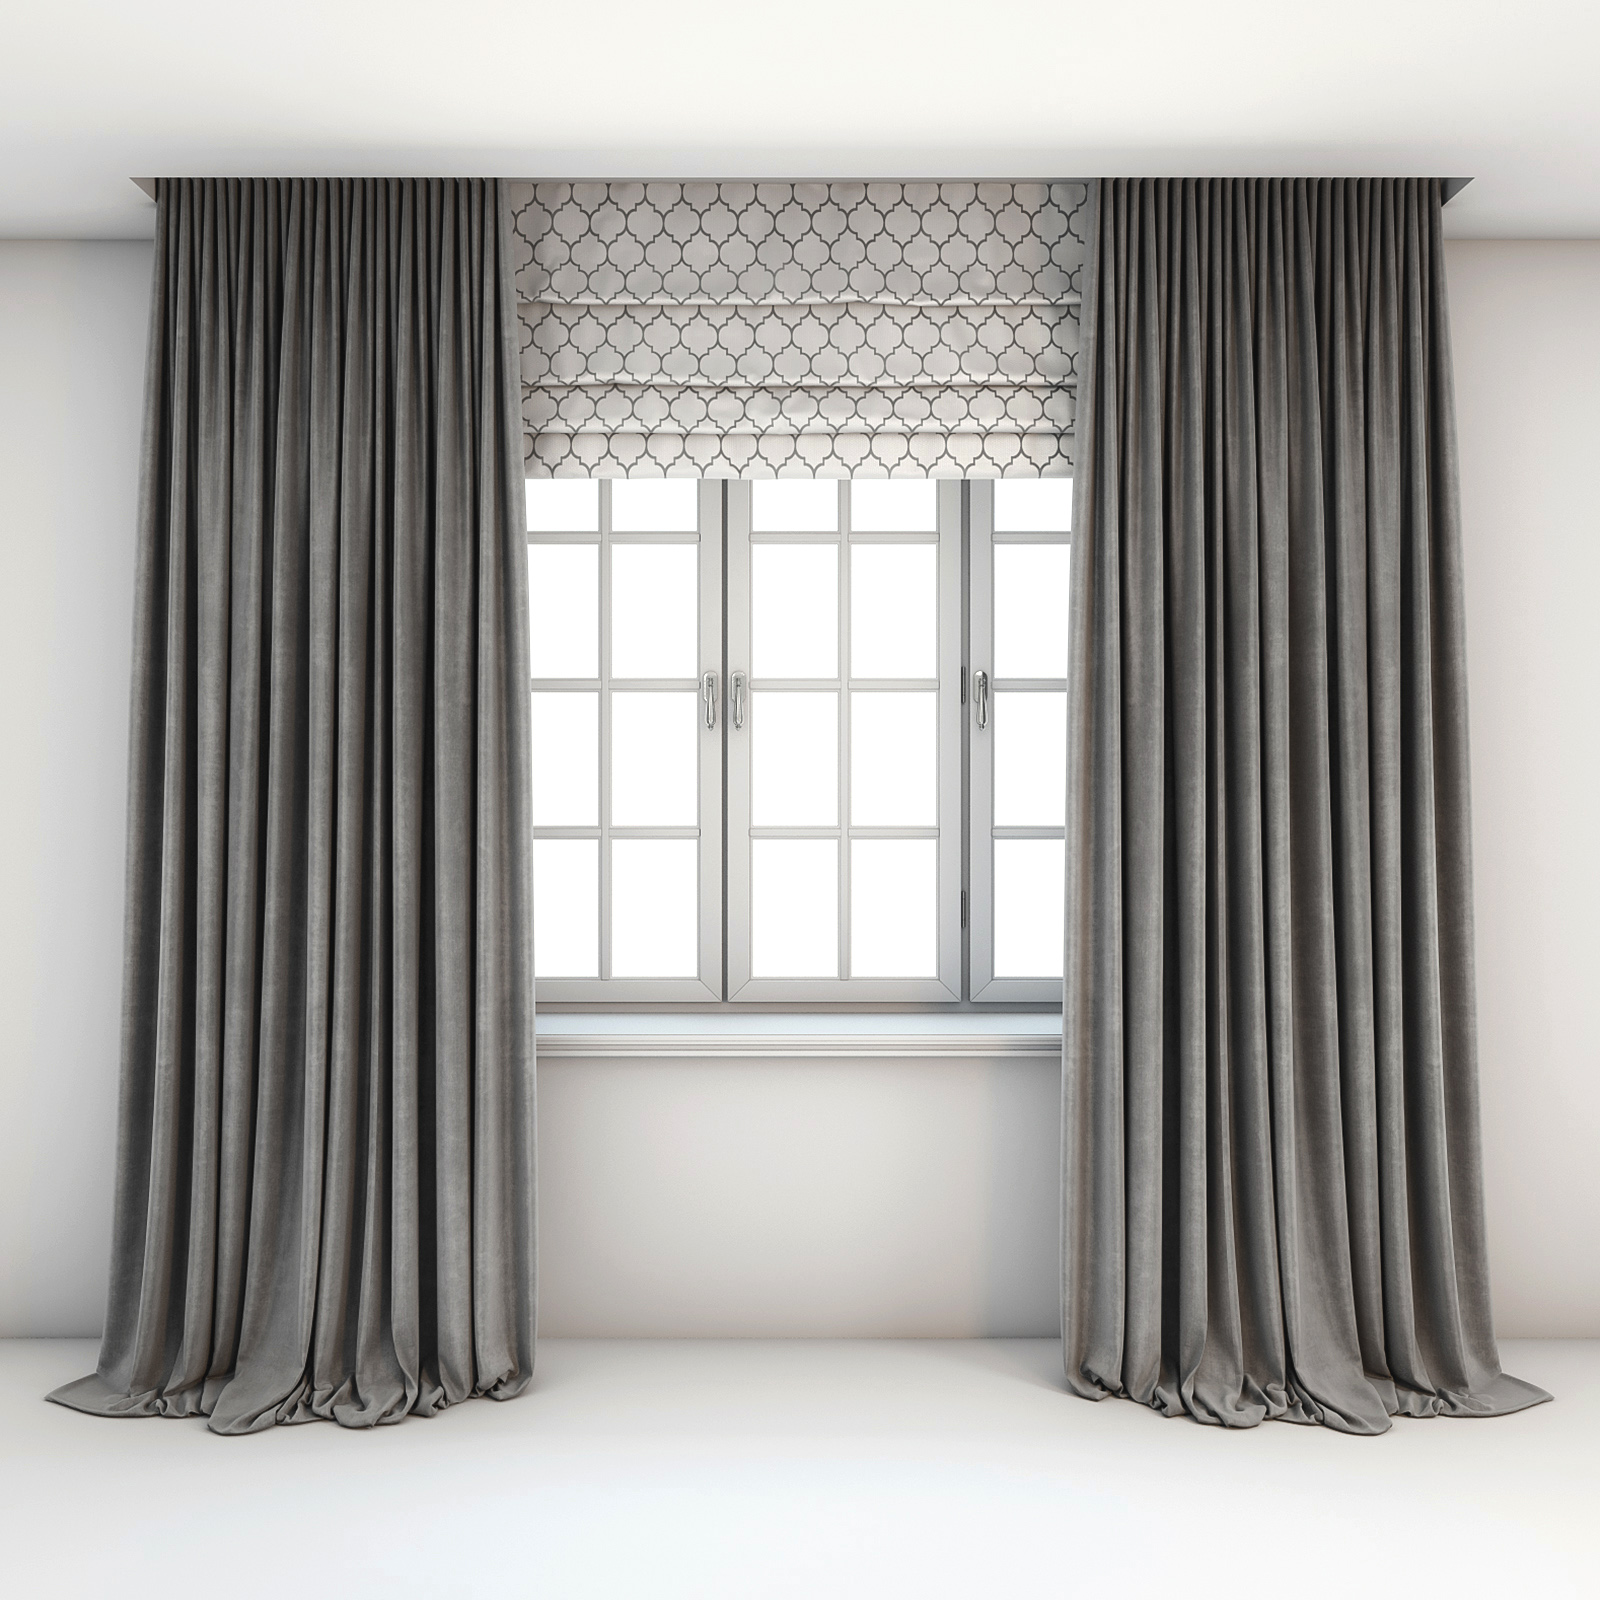 Two Tone Grey Curtains Straight To The Floor Roman Shades